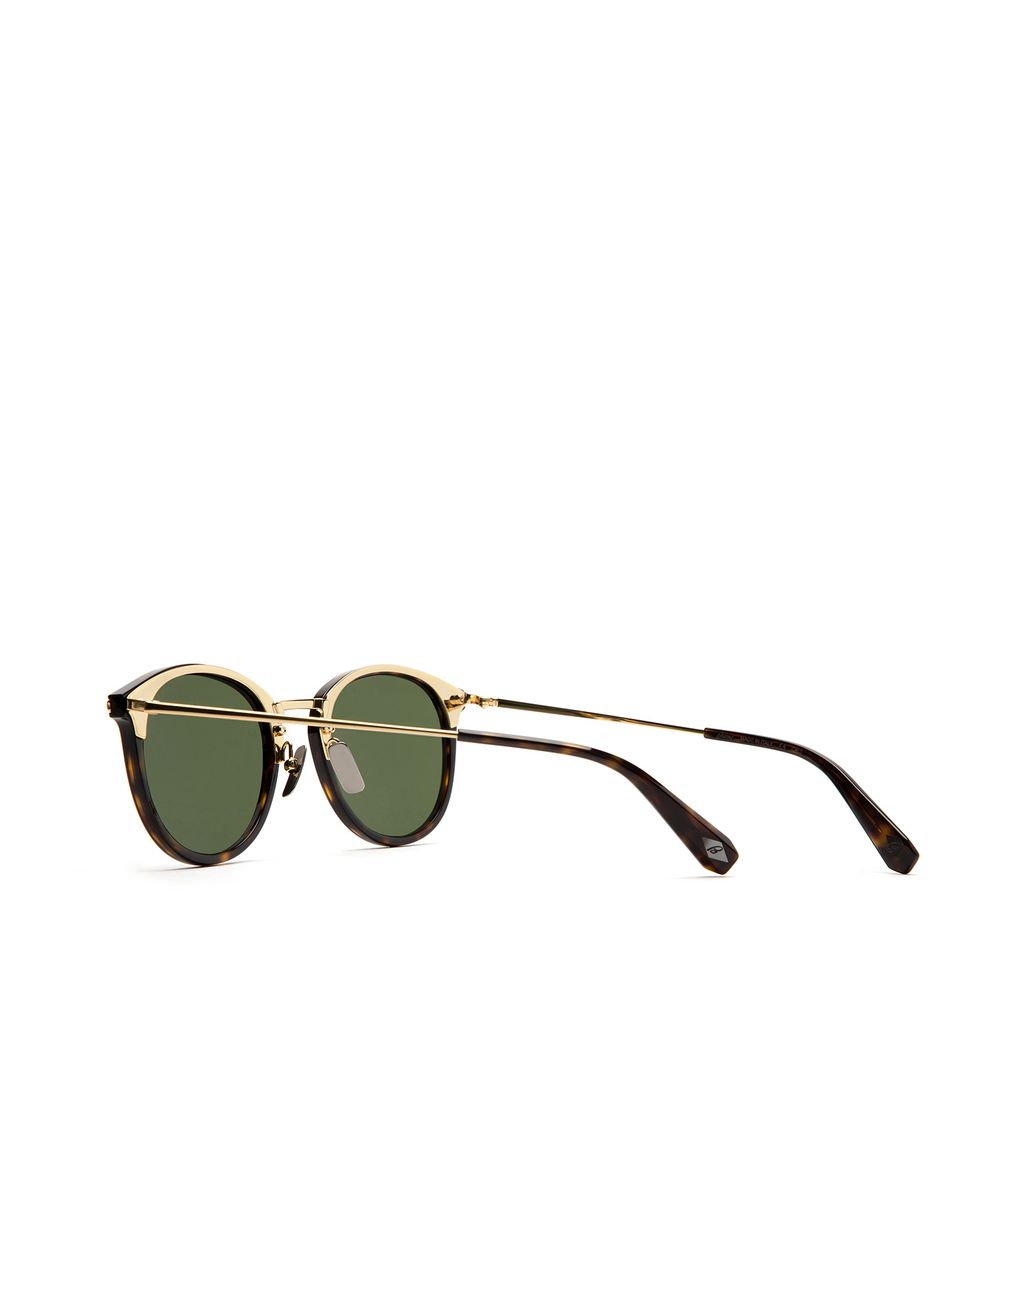 BRIONI Shiny Havana Sunglasses with Green Lenses Sunglasses Man d